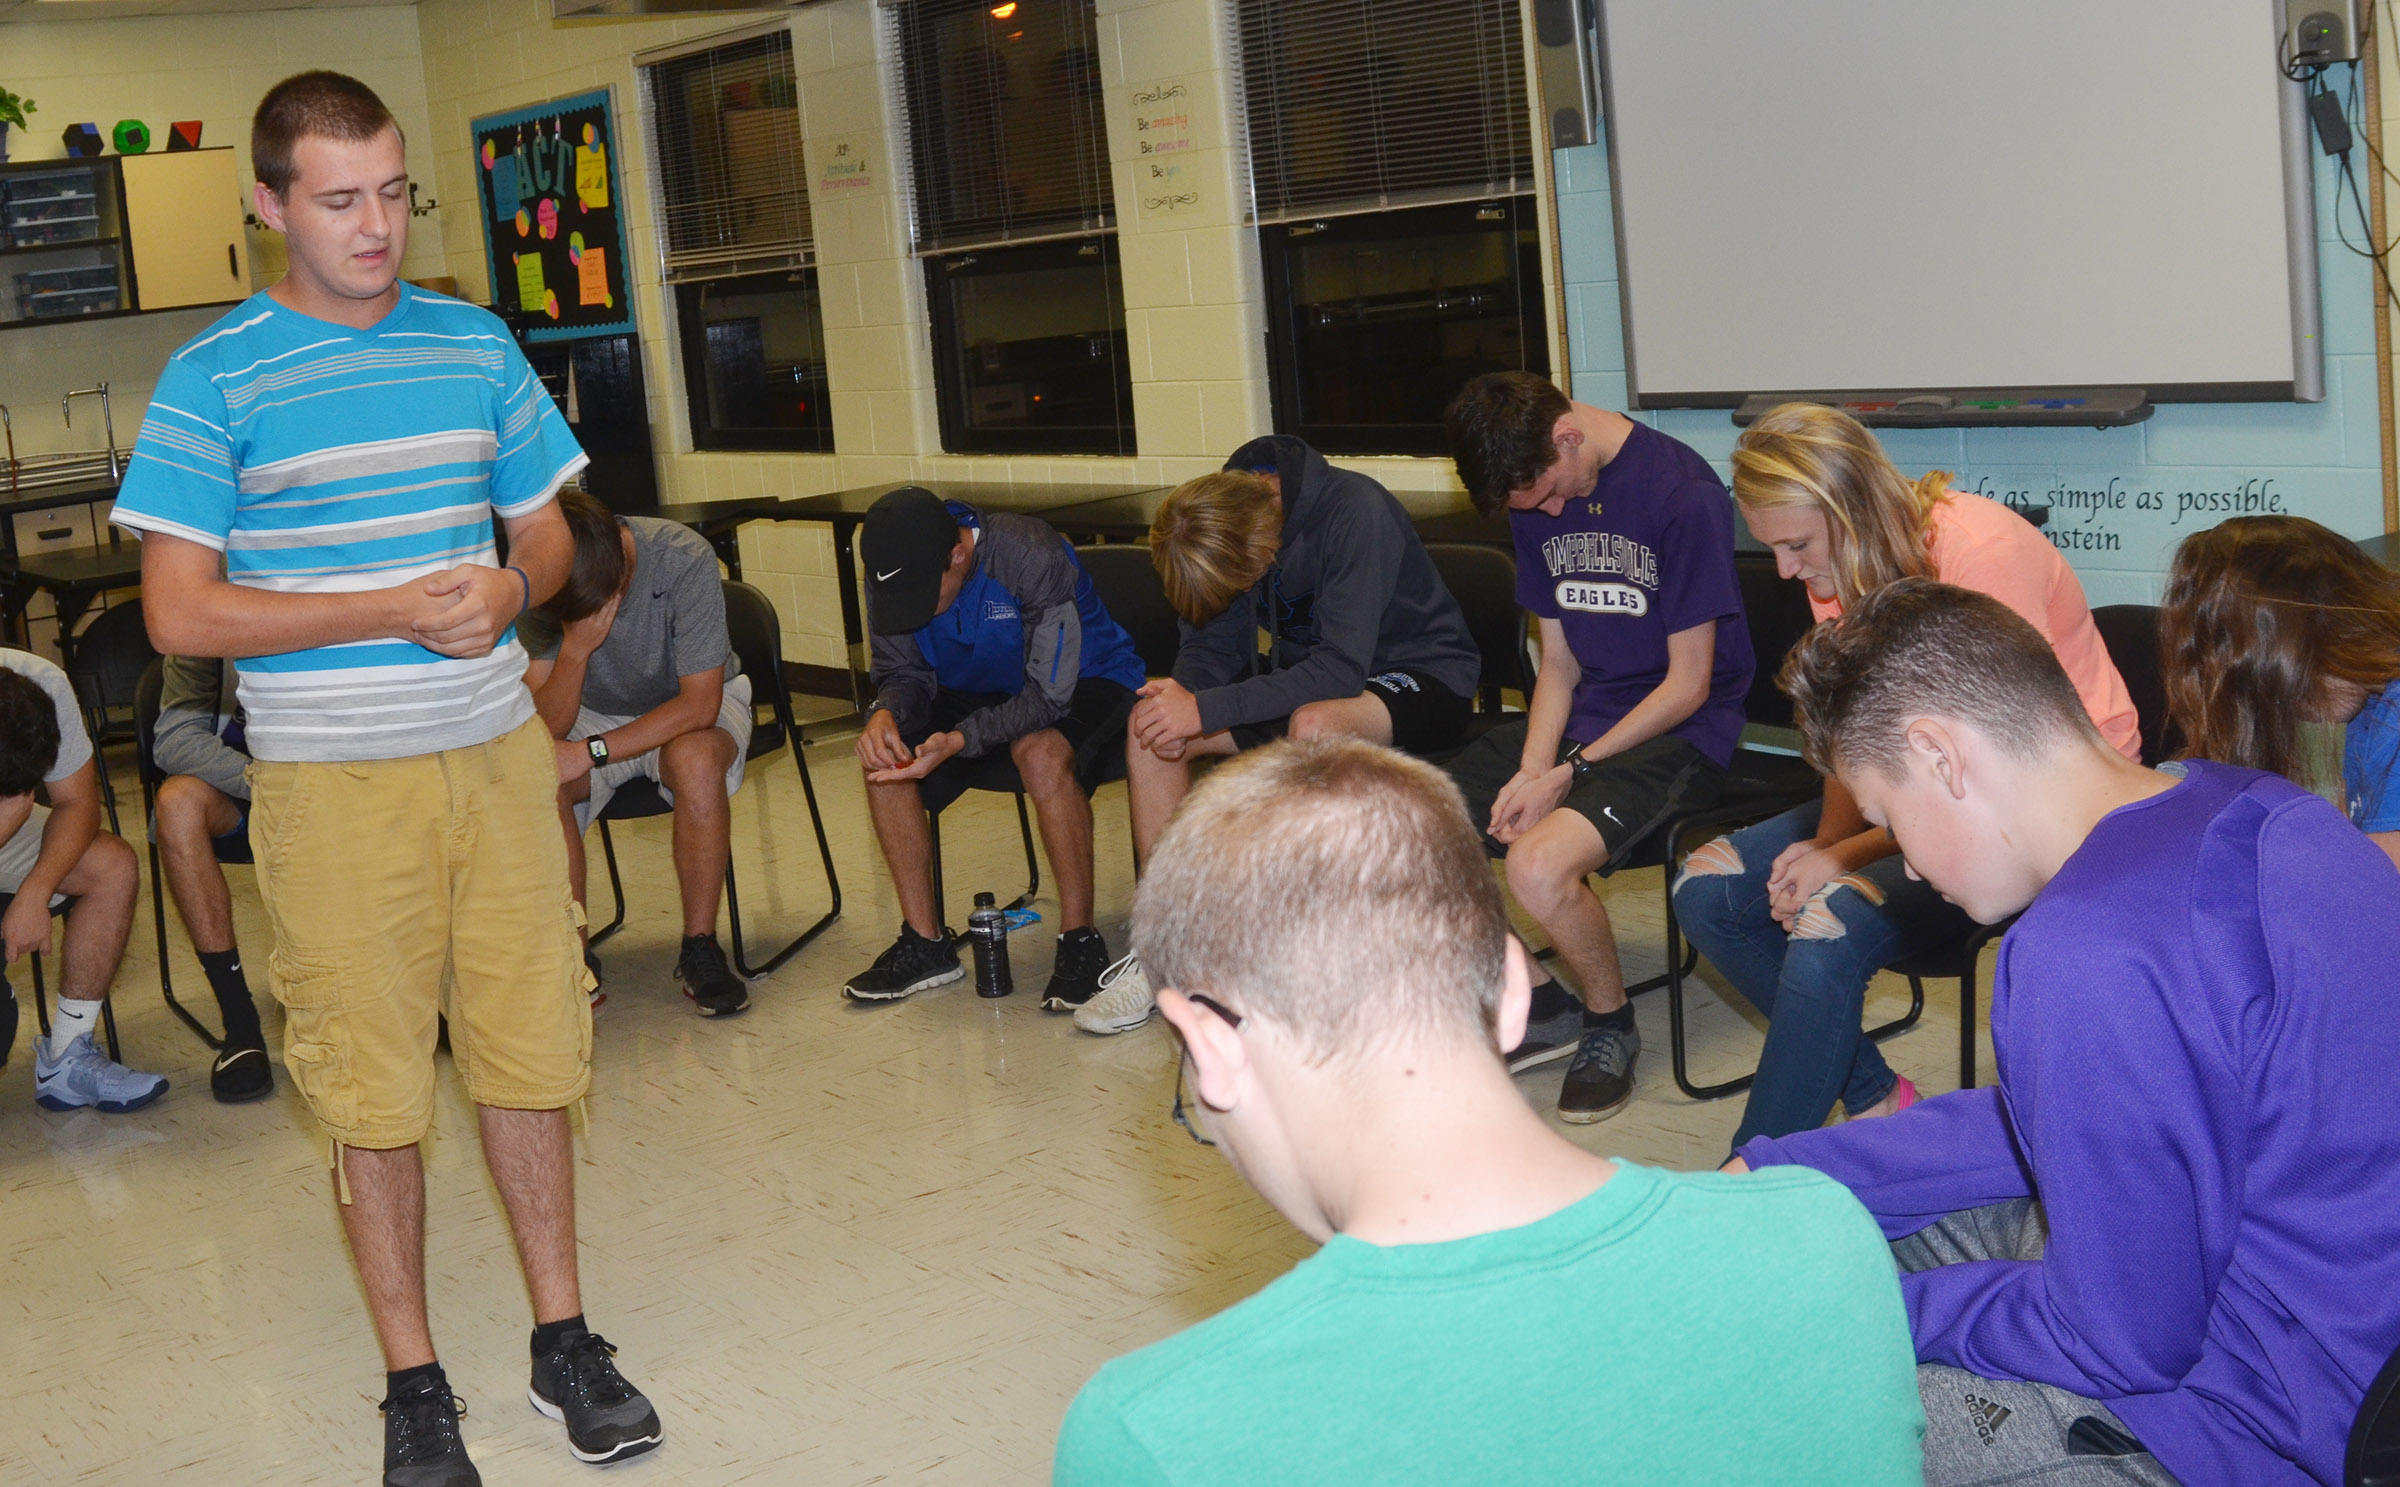 CHS senior Austin Fitzgerald prays with his fellow FCA members.